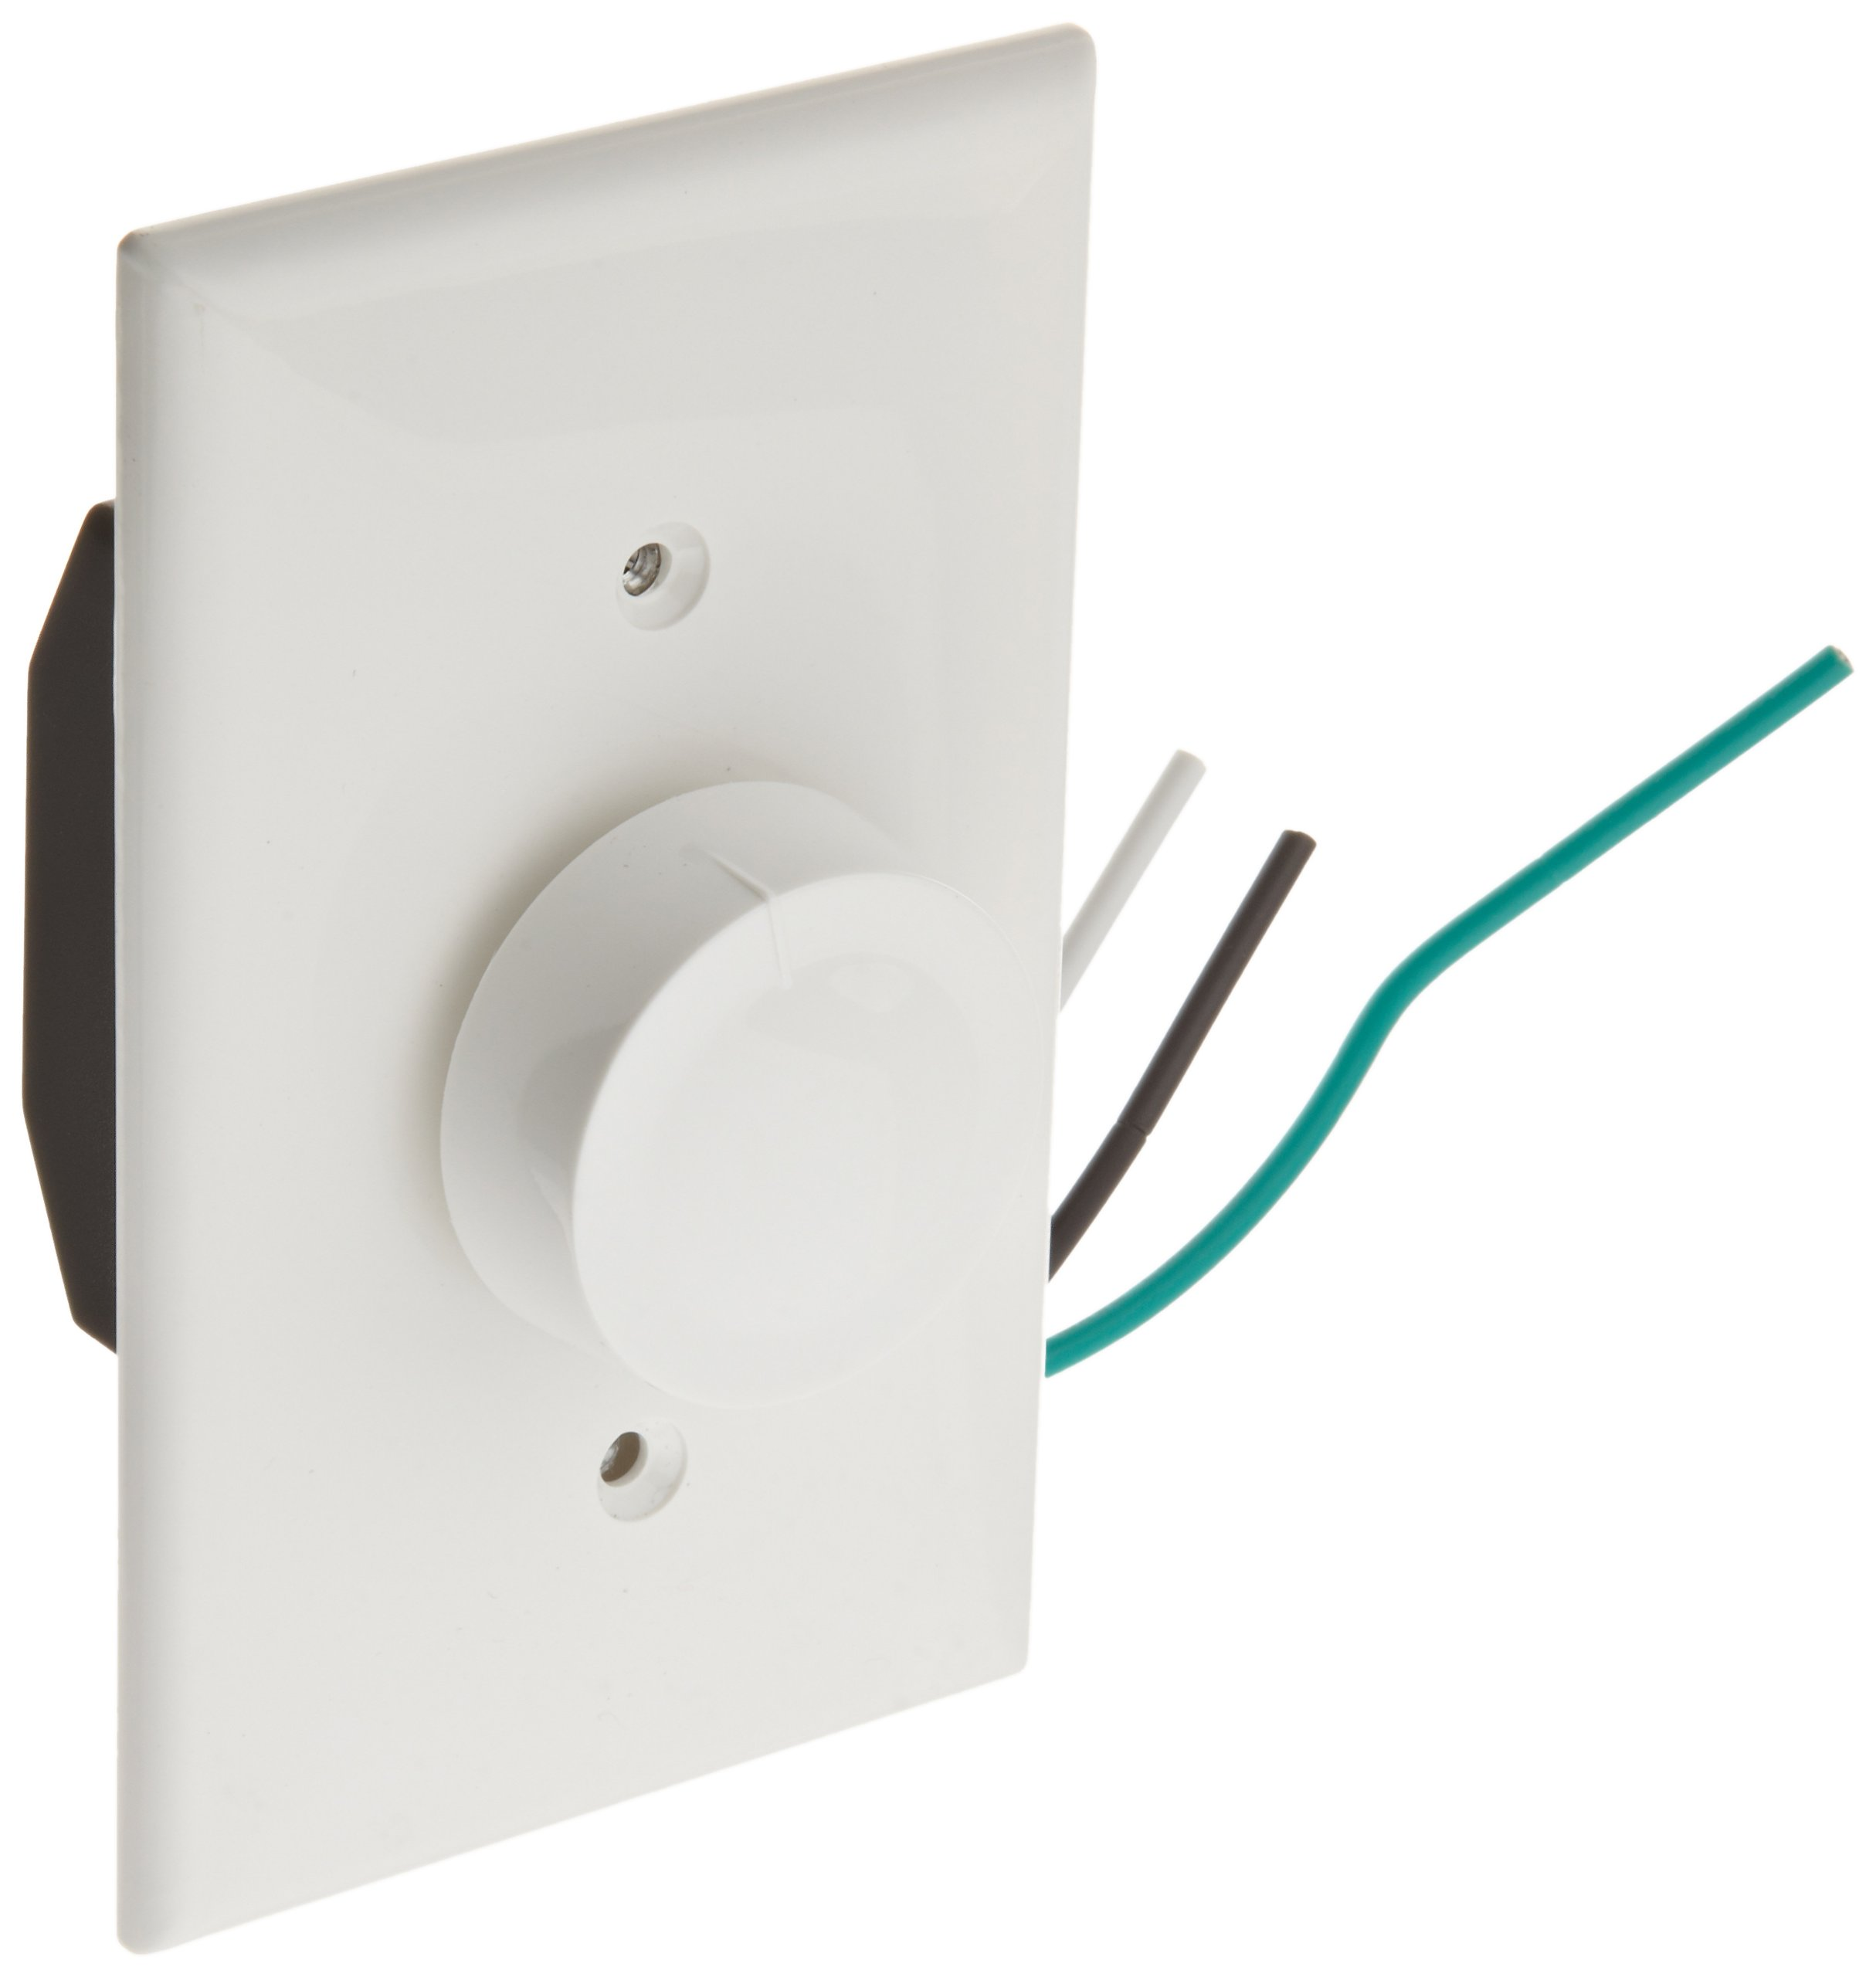 Morris Products 82616 Rotary Fan Speed Controls, White, Single Pole, 120V, Variable Speed